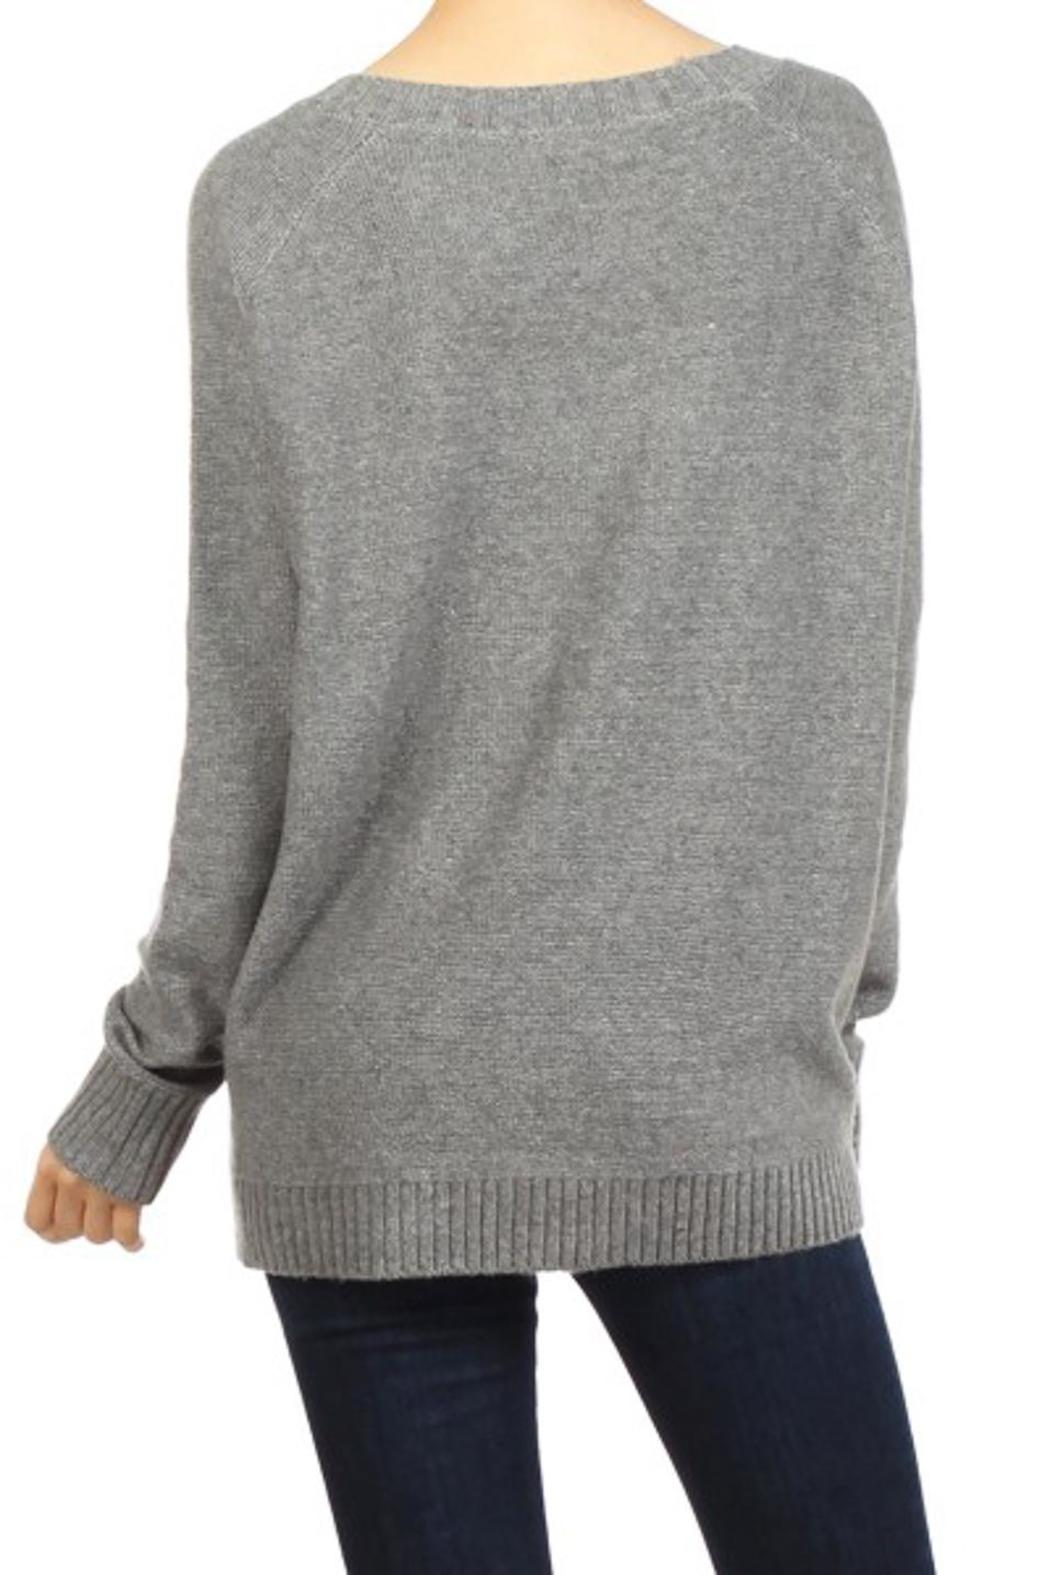 People Outfitter Departures Sweater - Front Full Image